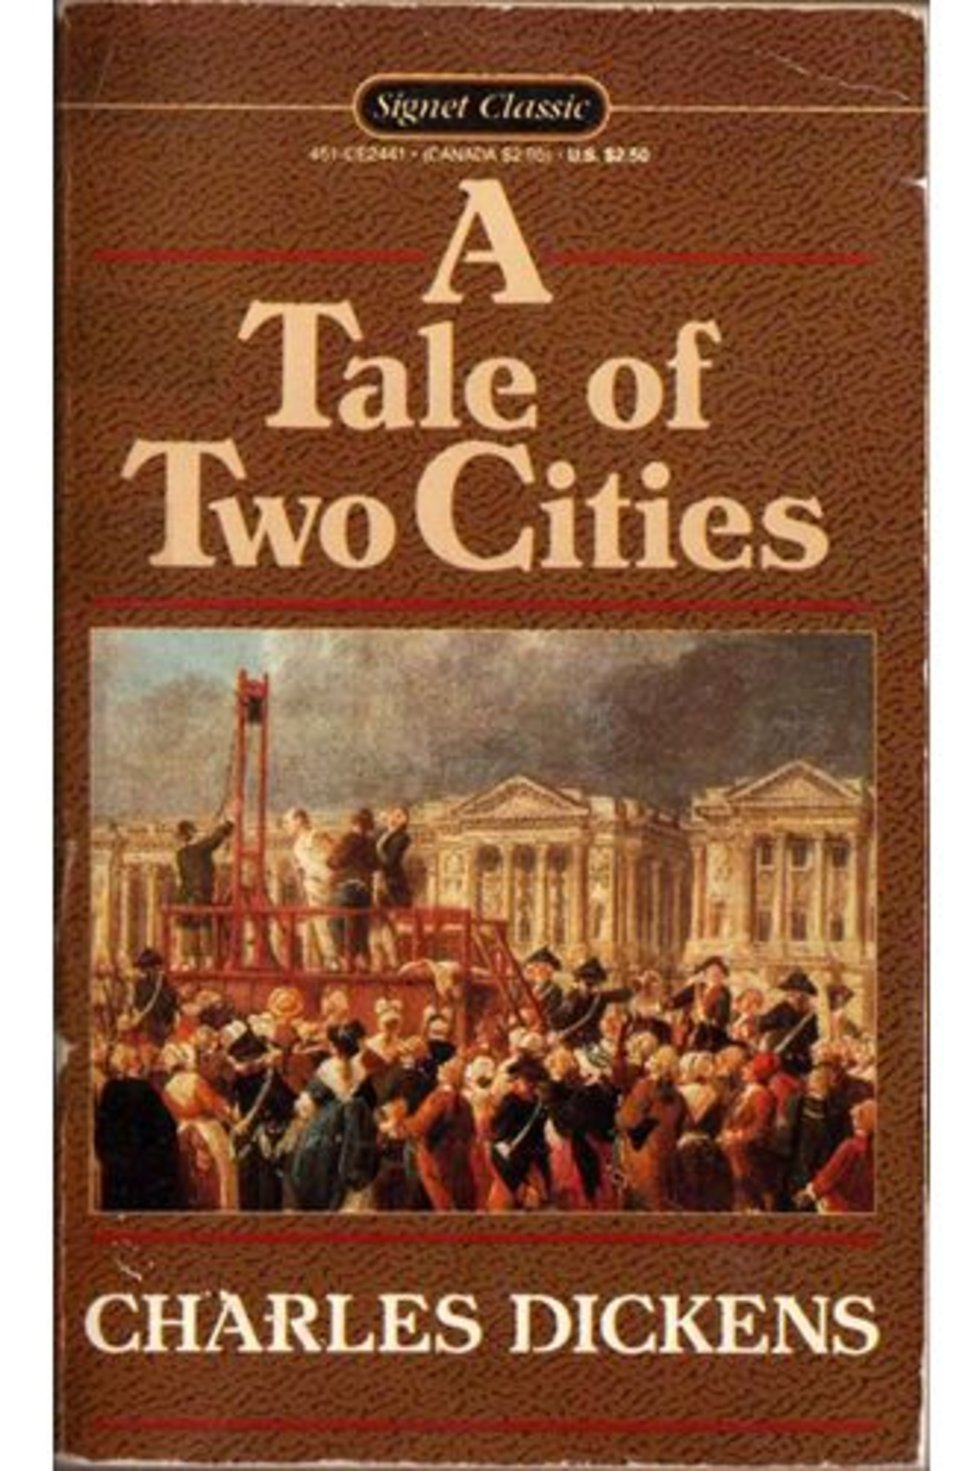 A Tale of Two Cities - Kindle edition by Charles Dickens A tale of two cities images